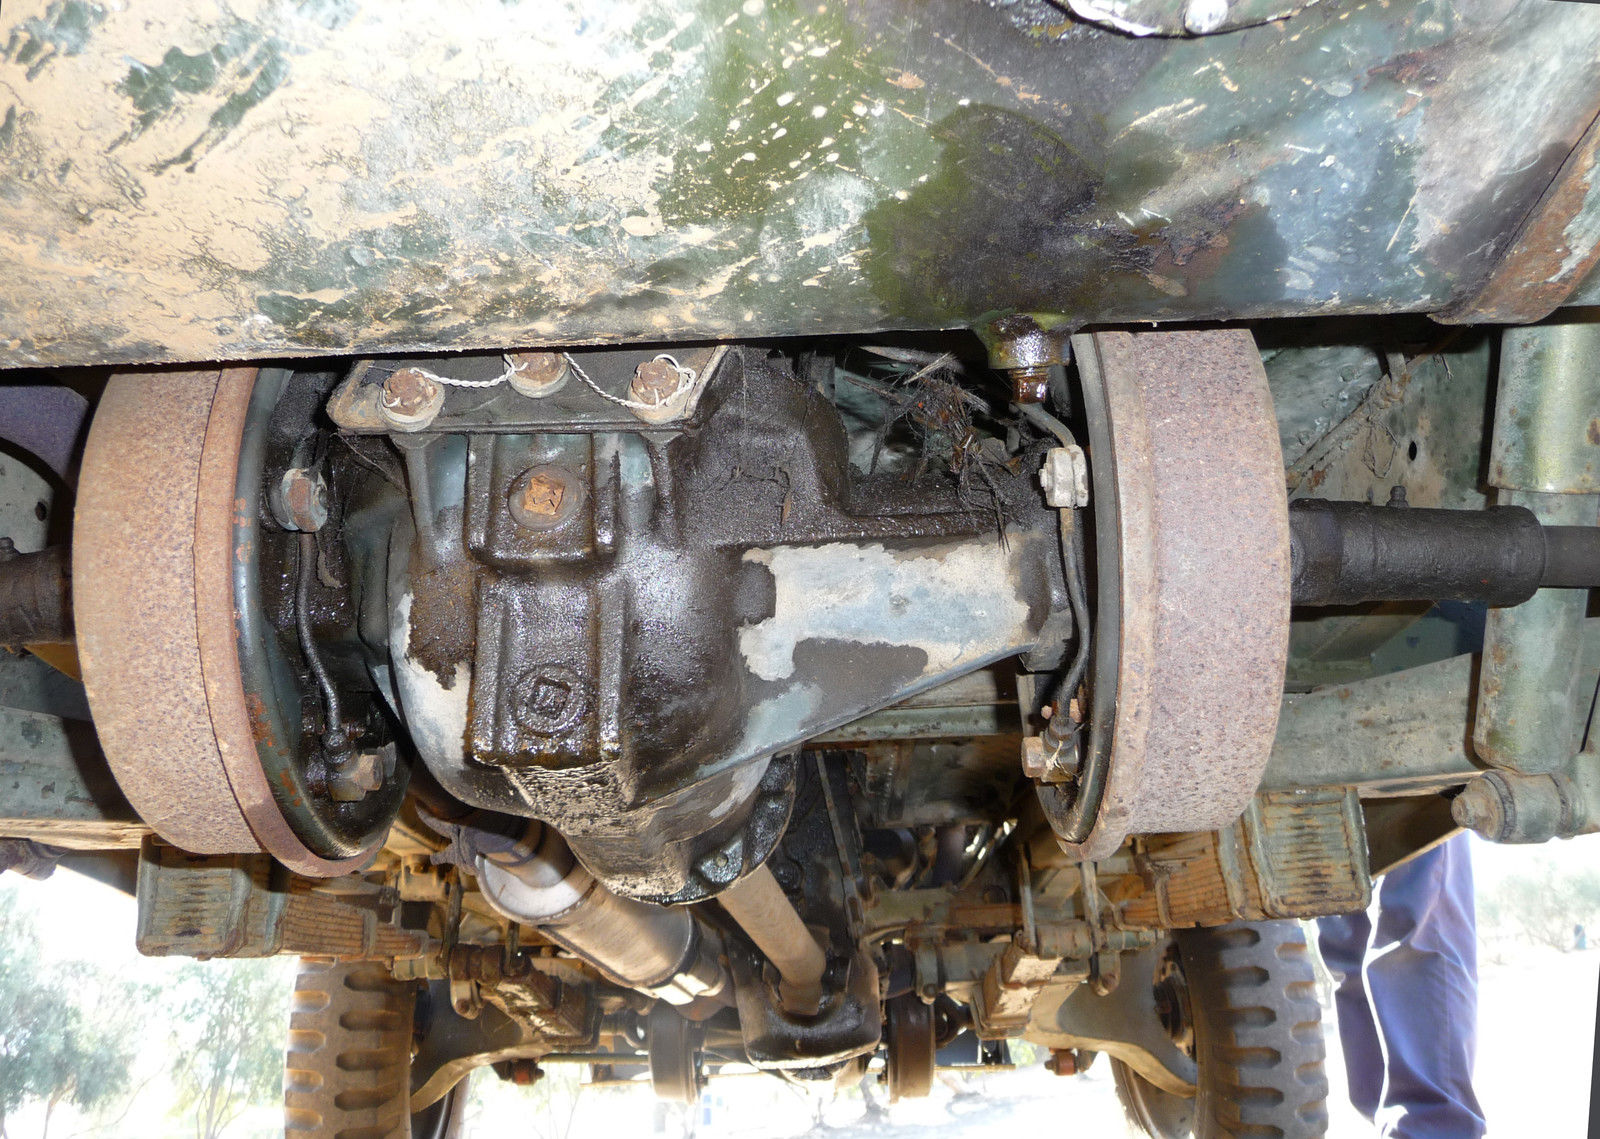 As can be seen in this picture the AMC M422 has inboard drum brakes front and rear with a fully independent suspension.